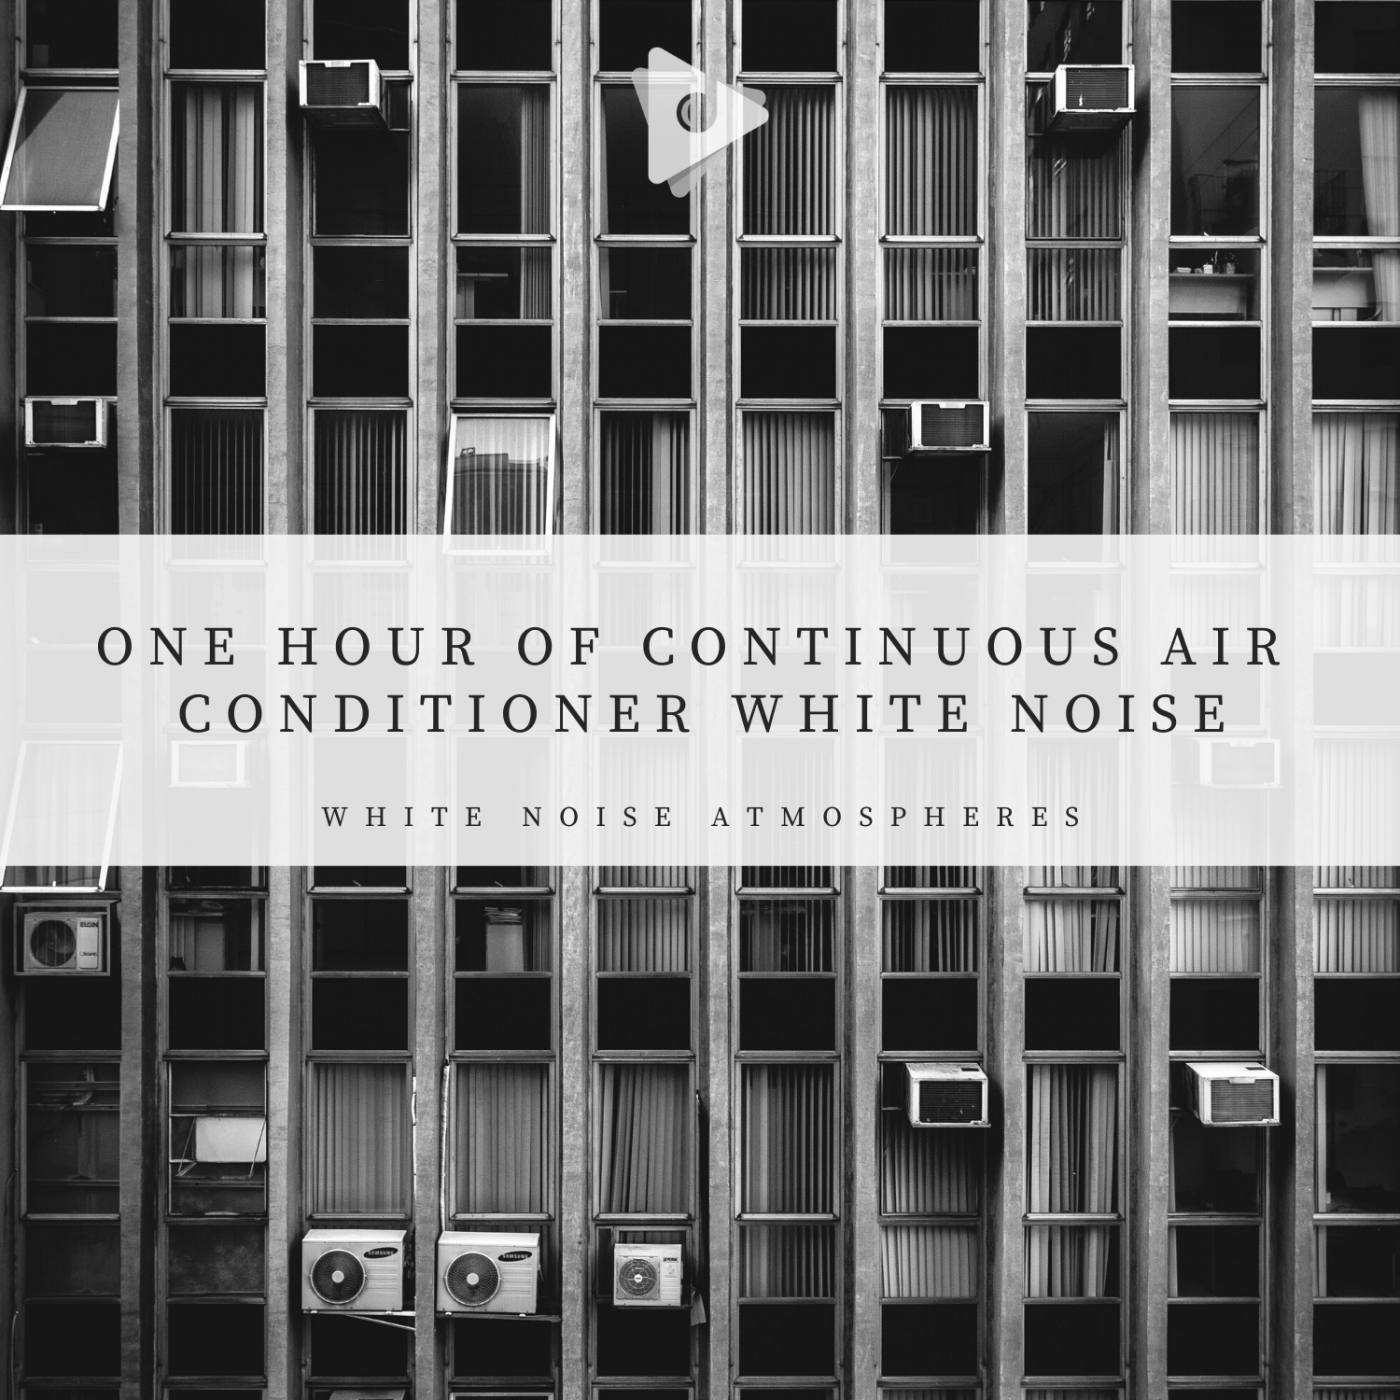 1 Hour of Continuous Air Conditioner White Noise